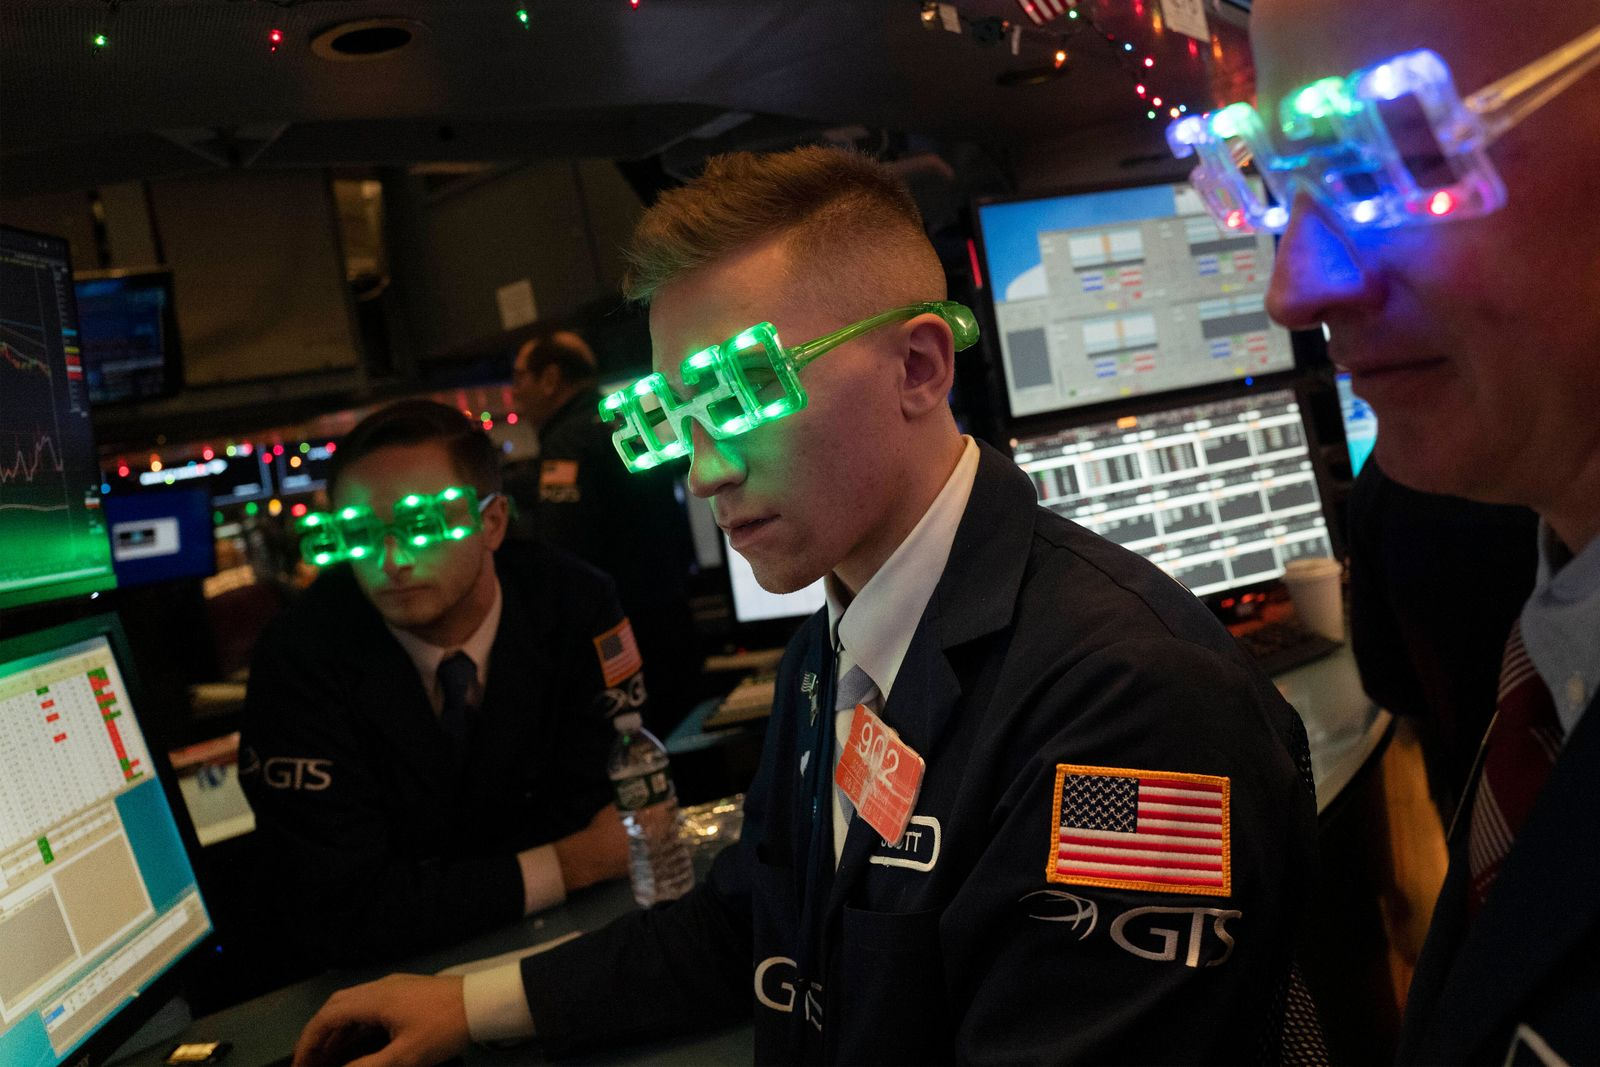 Stock traders wear New Year's 2020 party glasses at New York Stock Exchange, Tuesday, Dec. 31, 2019. Stocks slipped globally in quiet New Year's Eve trading Tuesday with many markets closed. Wall Street could close 2019 with back-to-back daily losses in a year that the U.S. posted the largest market gains since 2013. (AP Photo/Mark Lennihan)